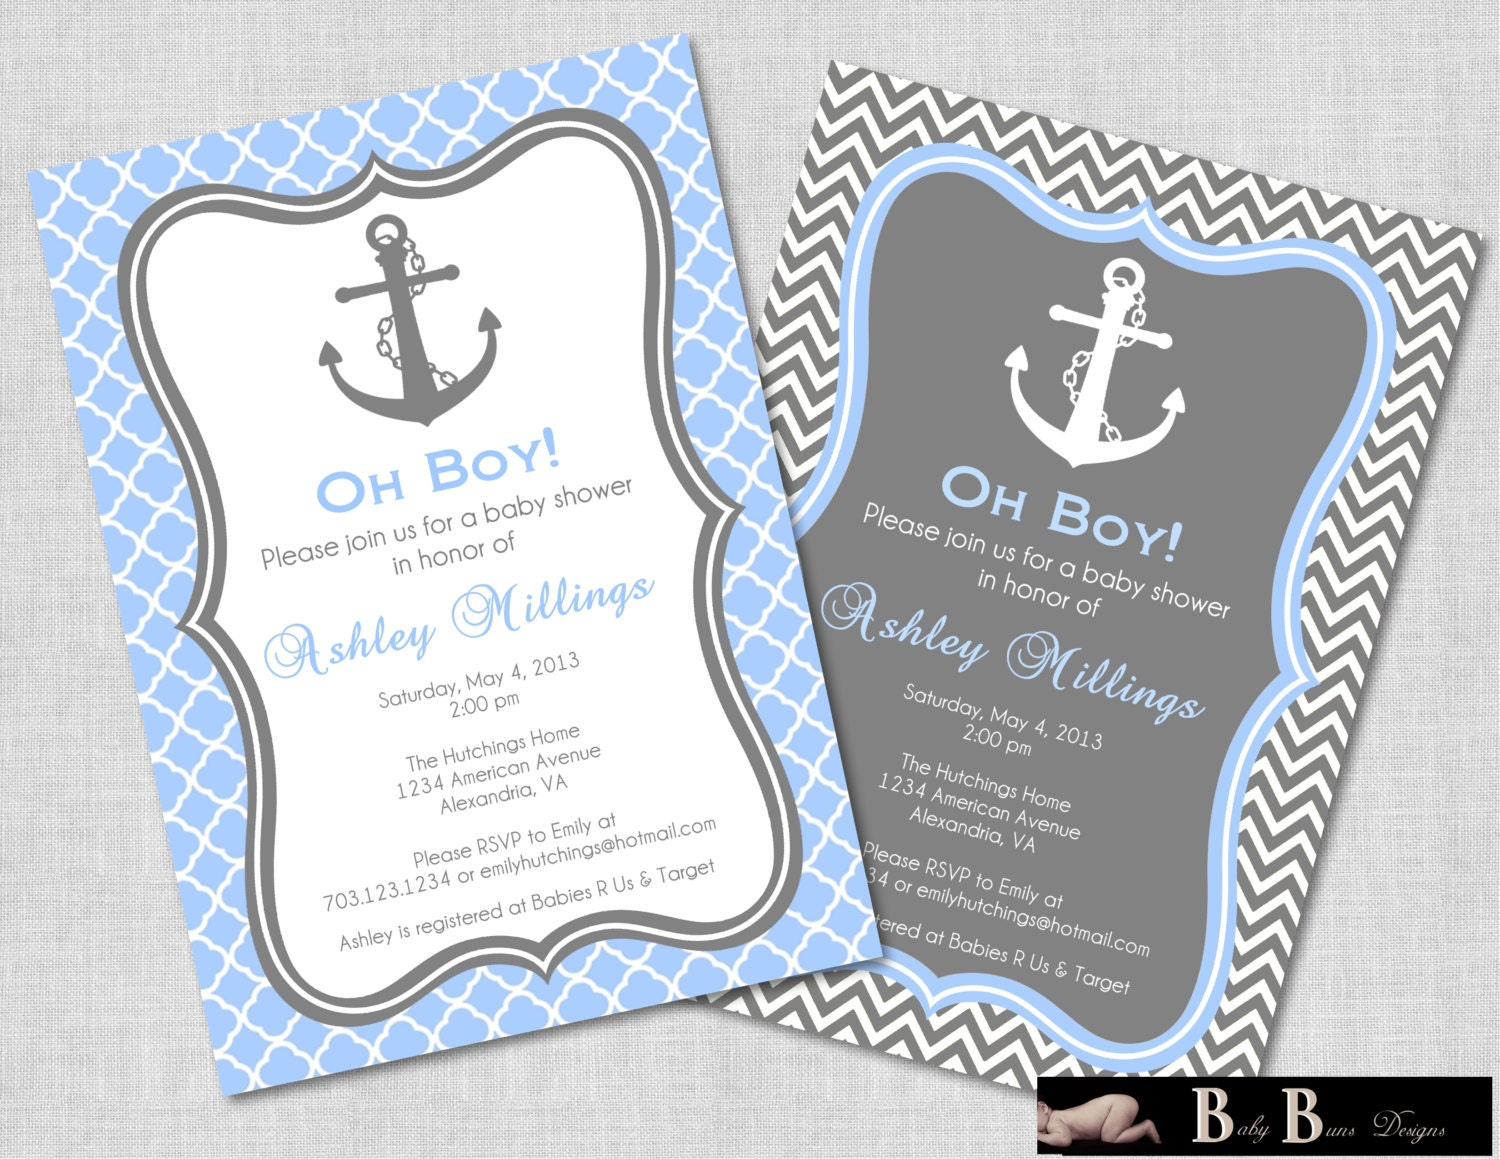 Custom Baby Shower Invitations For Boys was awesome invitations sample